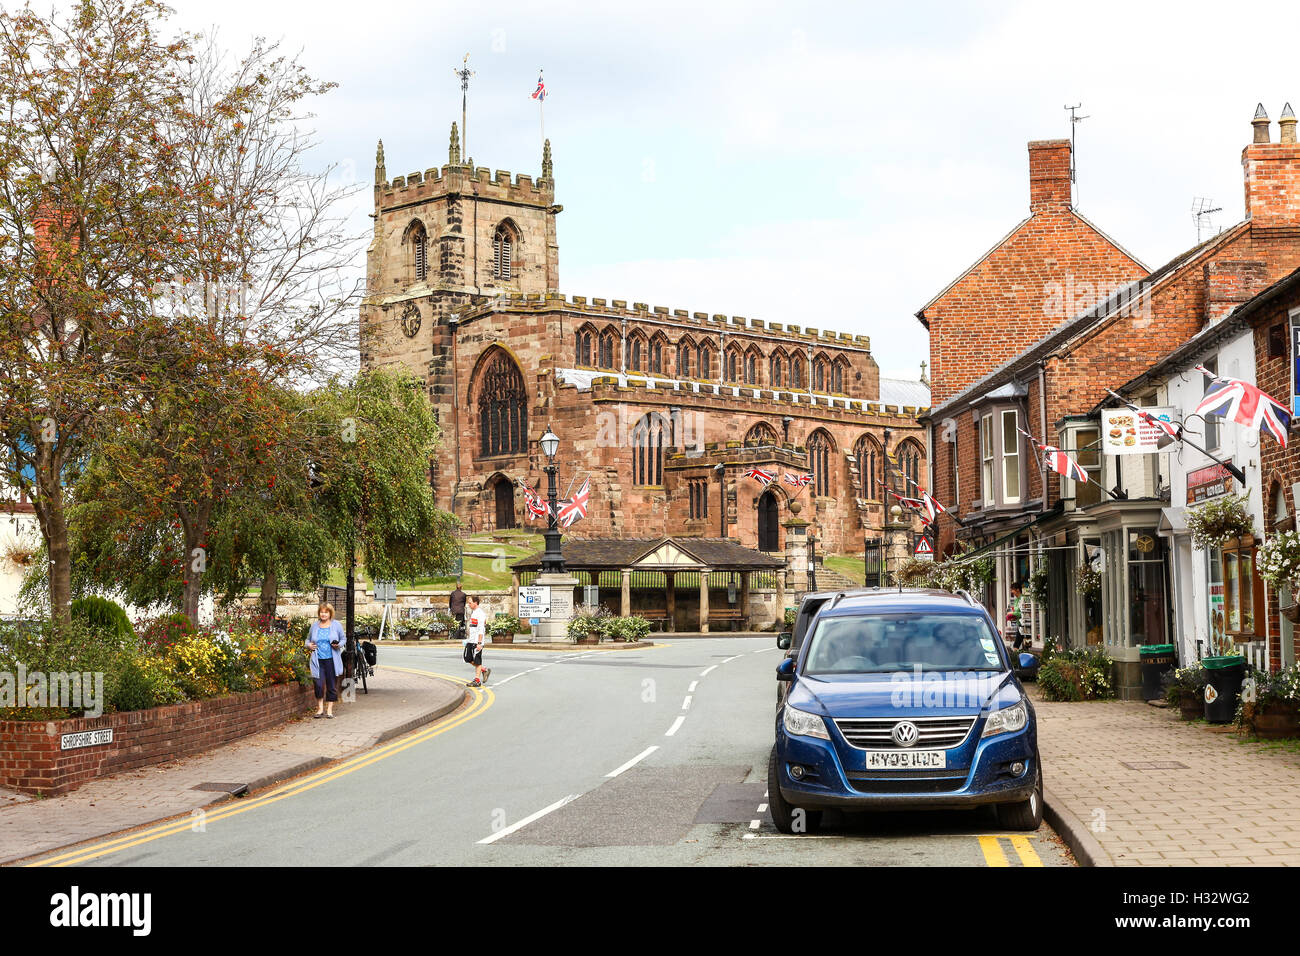 Parish Church of Saint James the Great in the centre of the village of Audlem Cheshire England UK - Stock Image